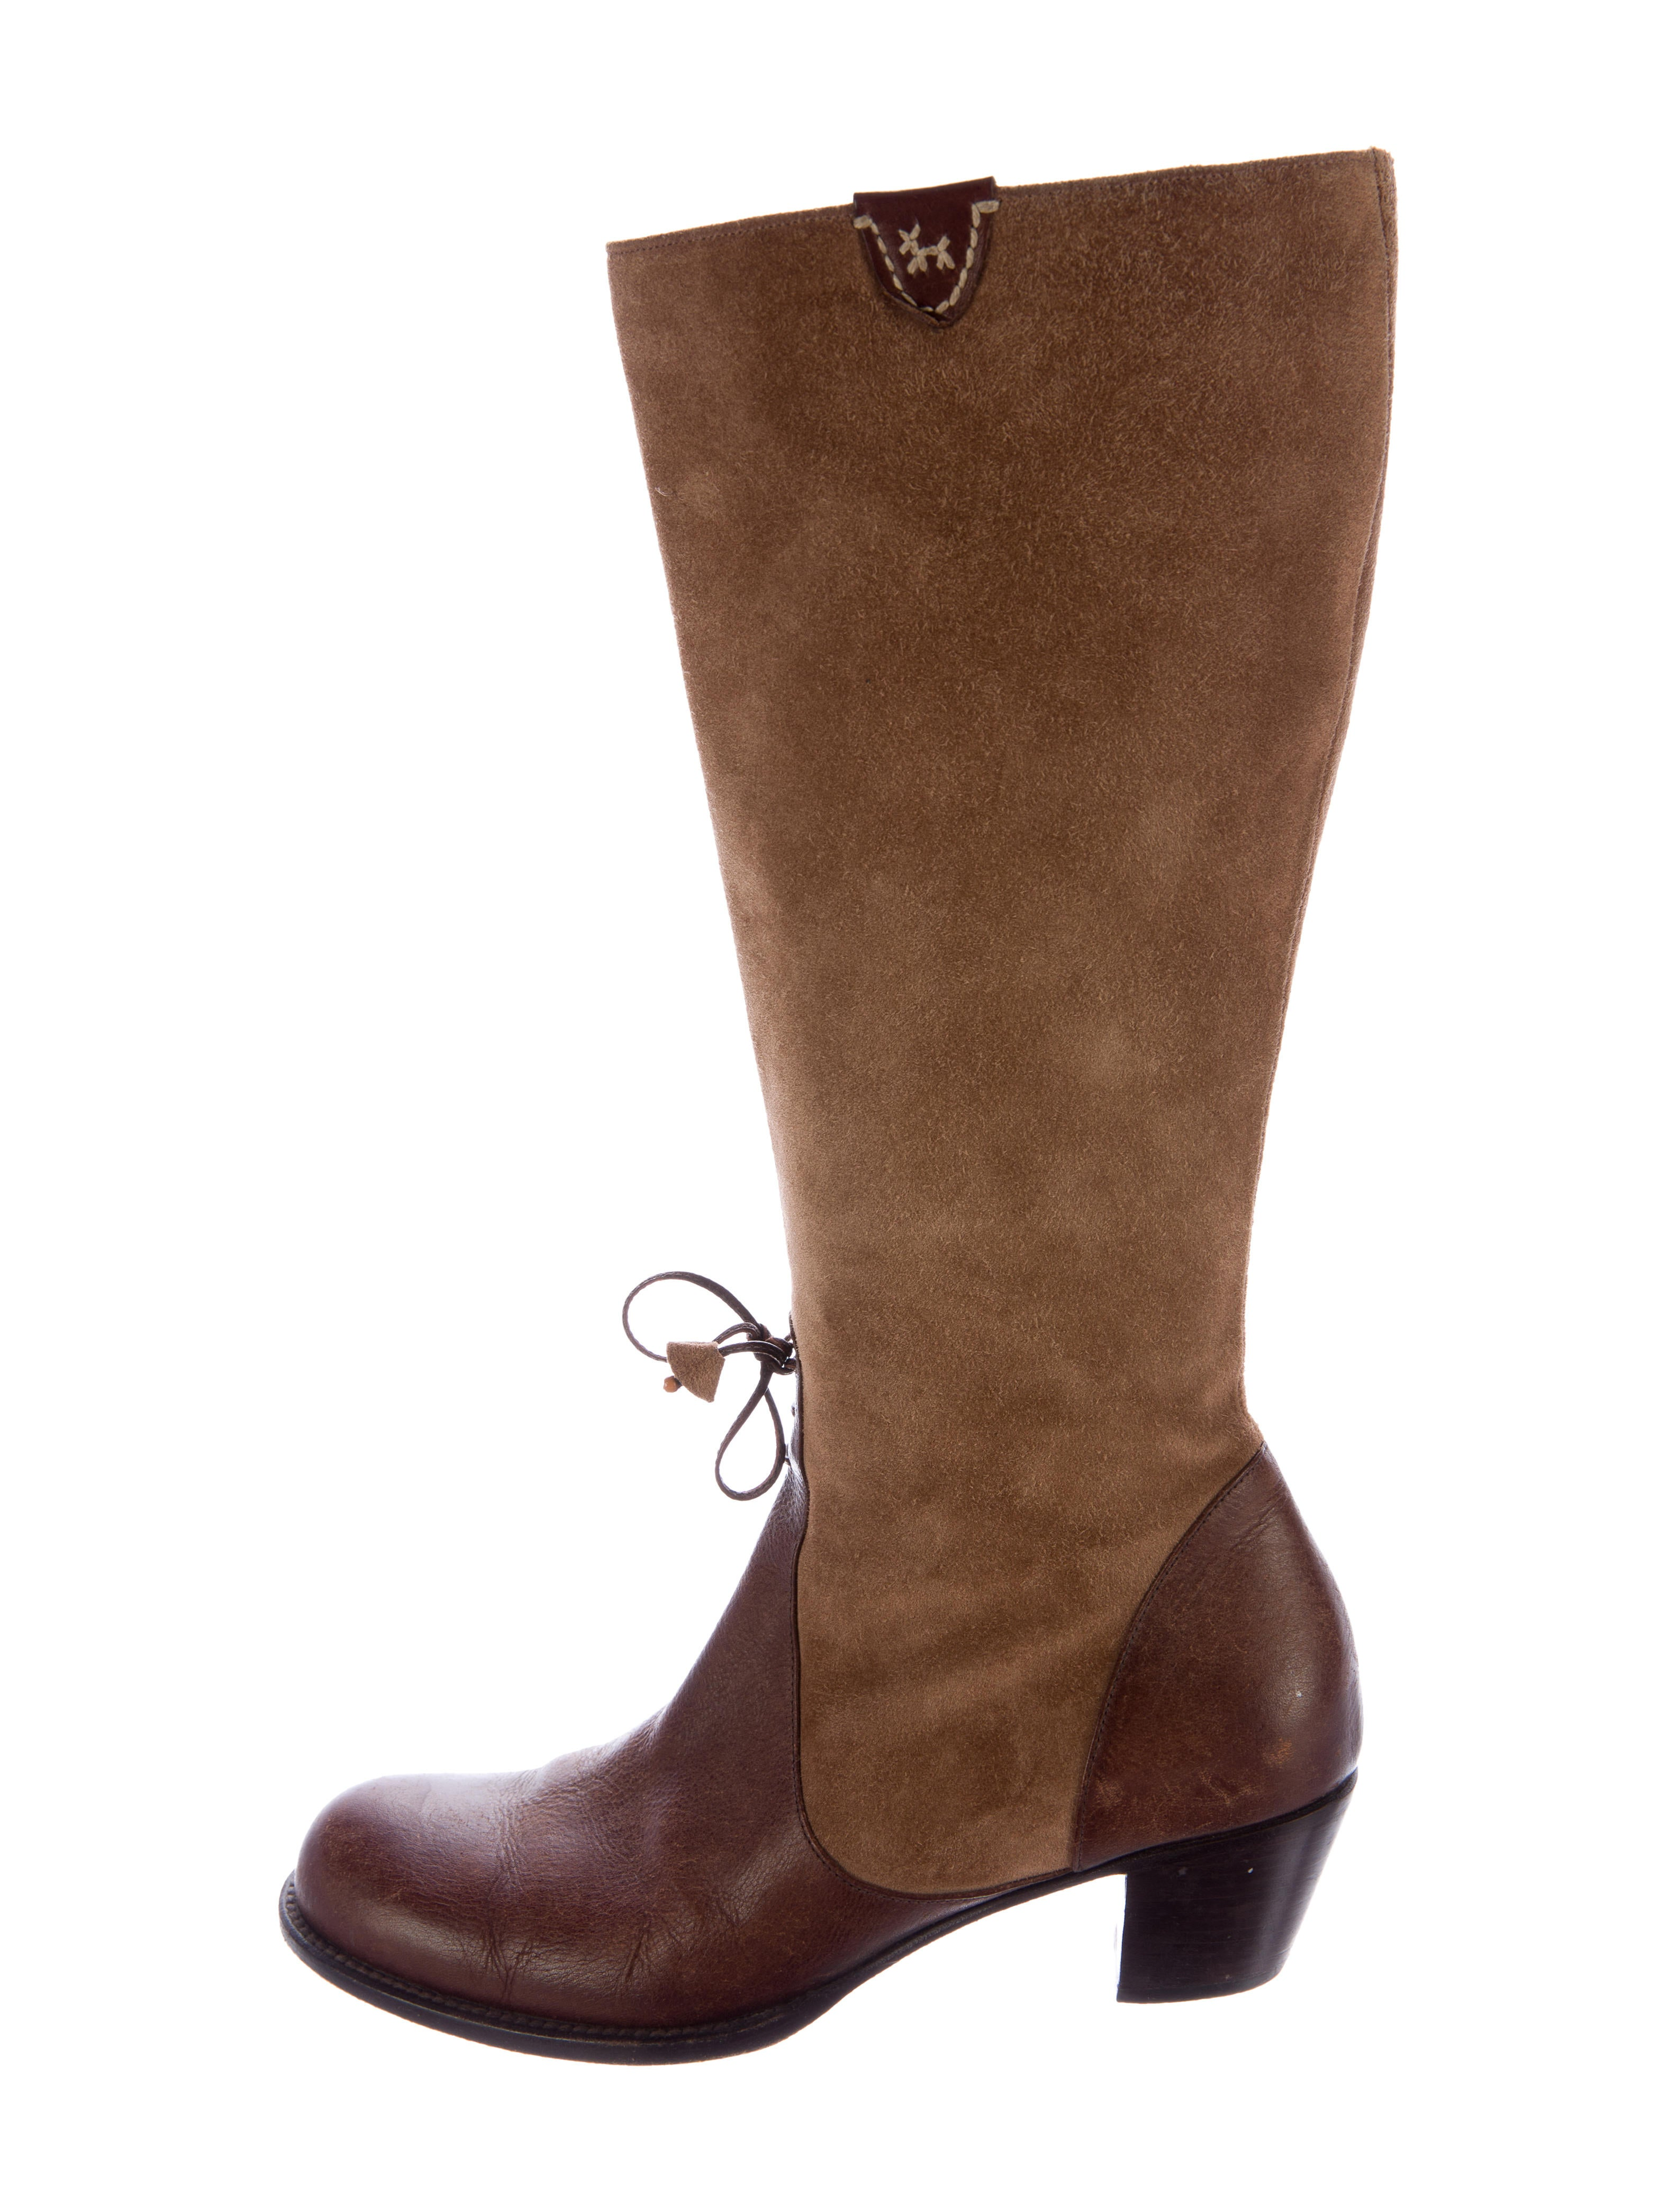 henry cuir suede knee high boots shoes hec20436 the